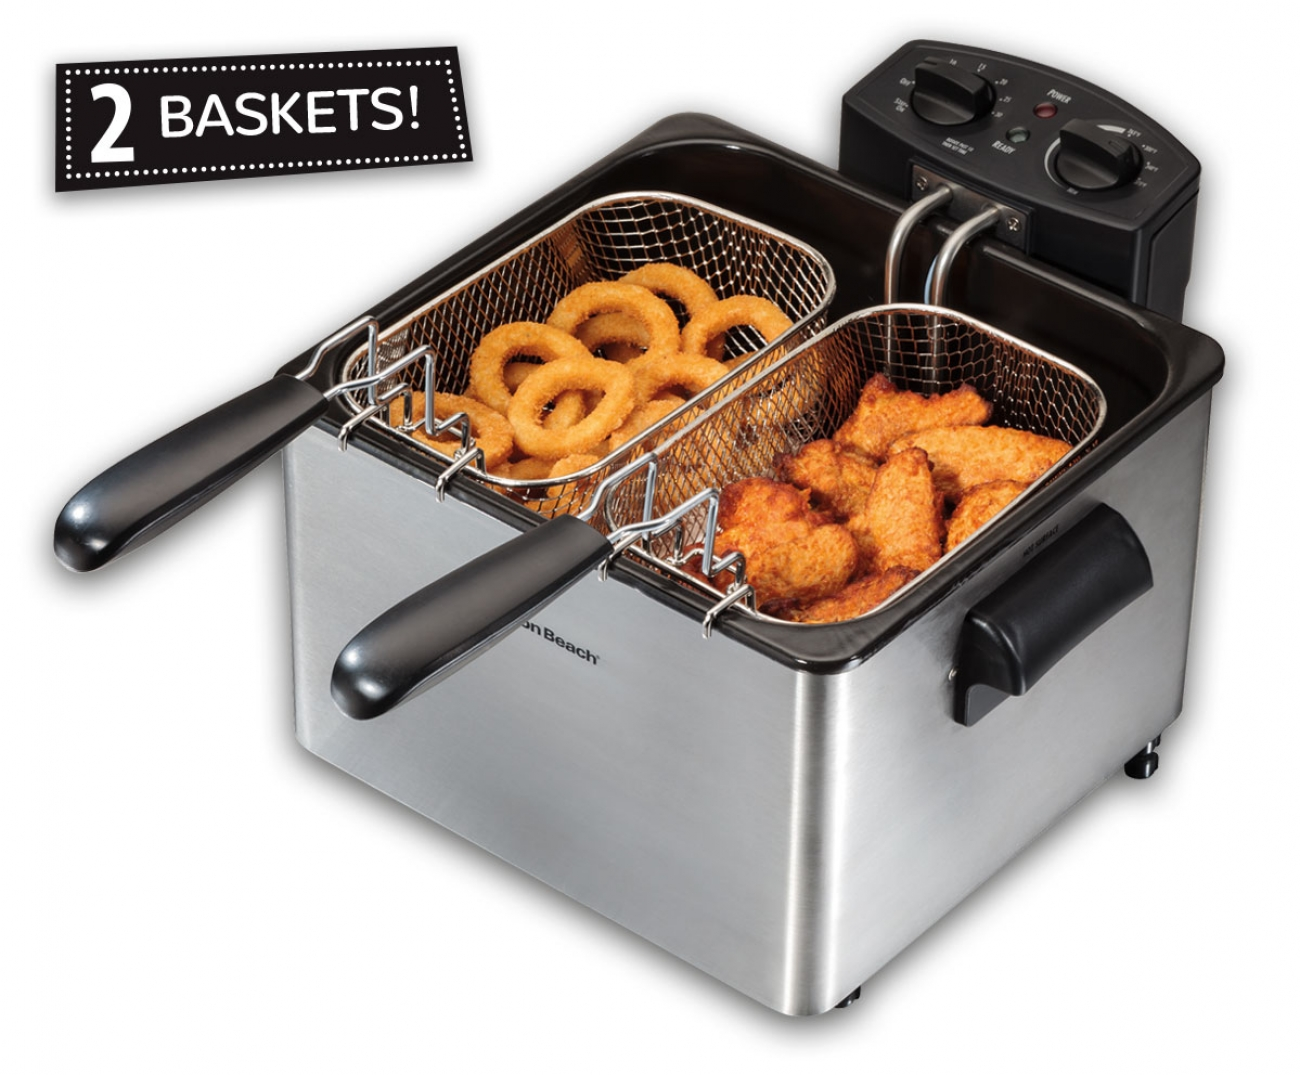 HB Professional Style Deep Fryer